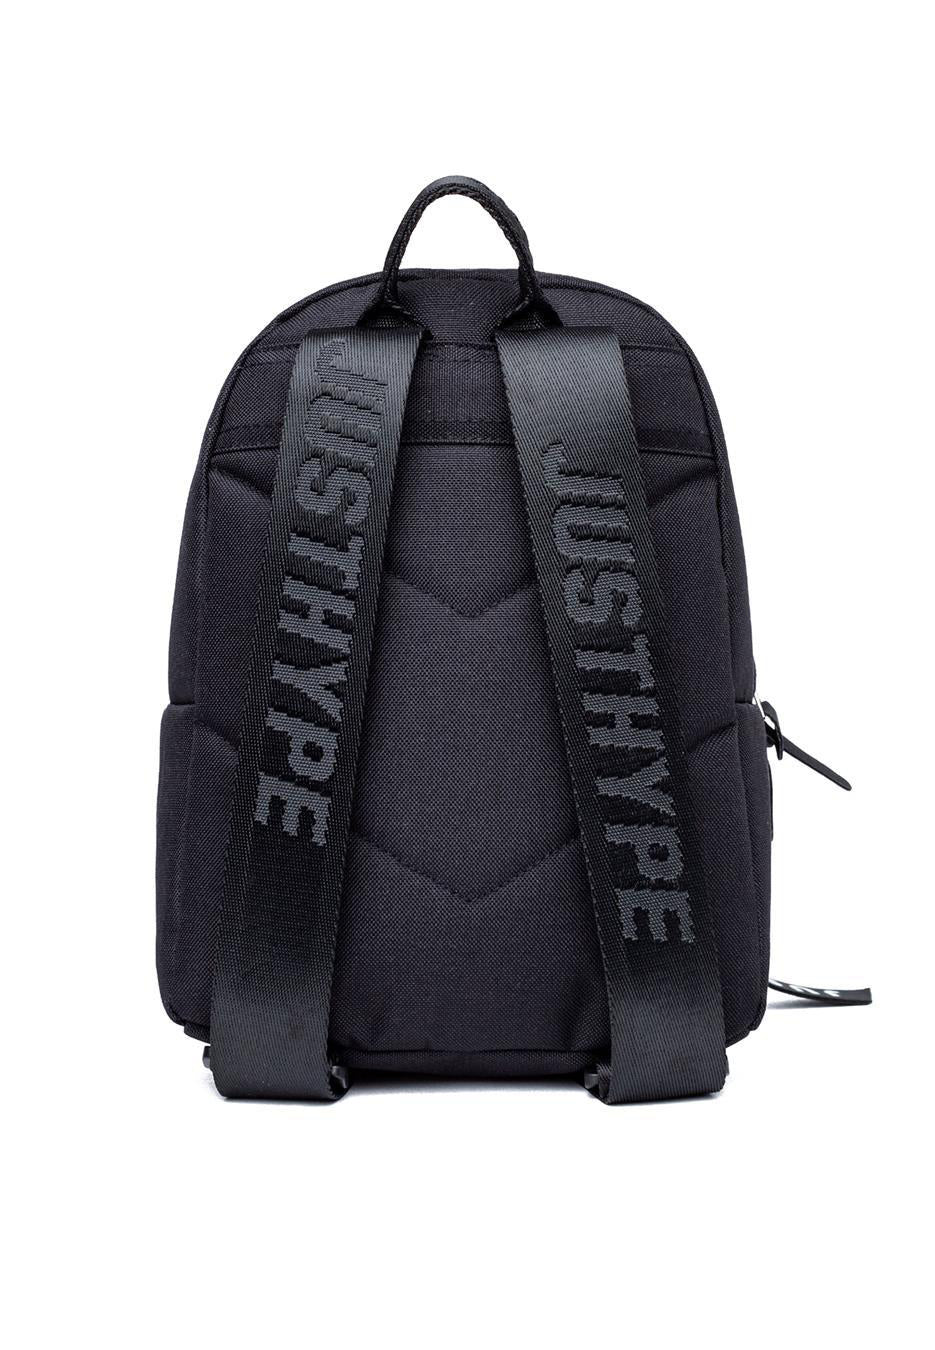 66d6d8074 HYPE BLACK CORE CREST MINI BACKPACK – JustHype ltd